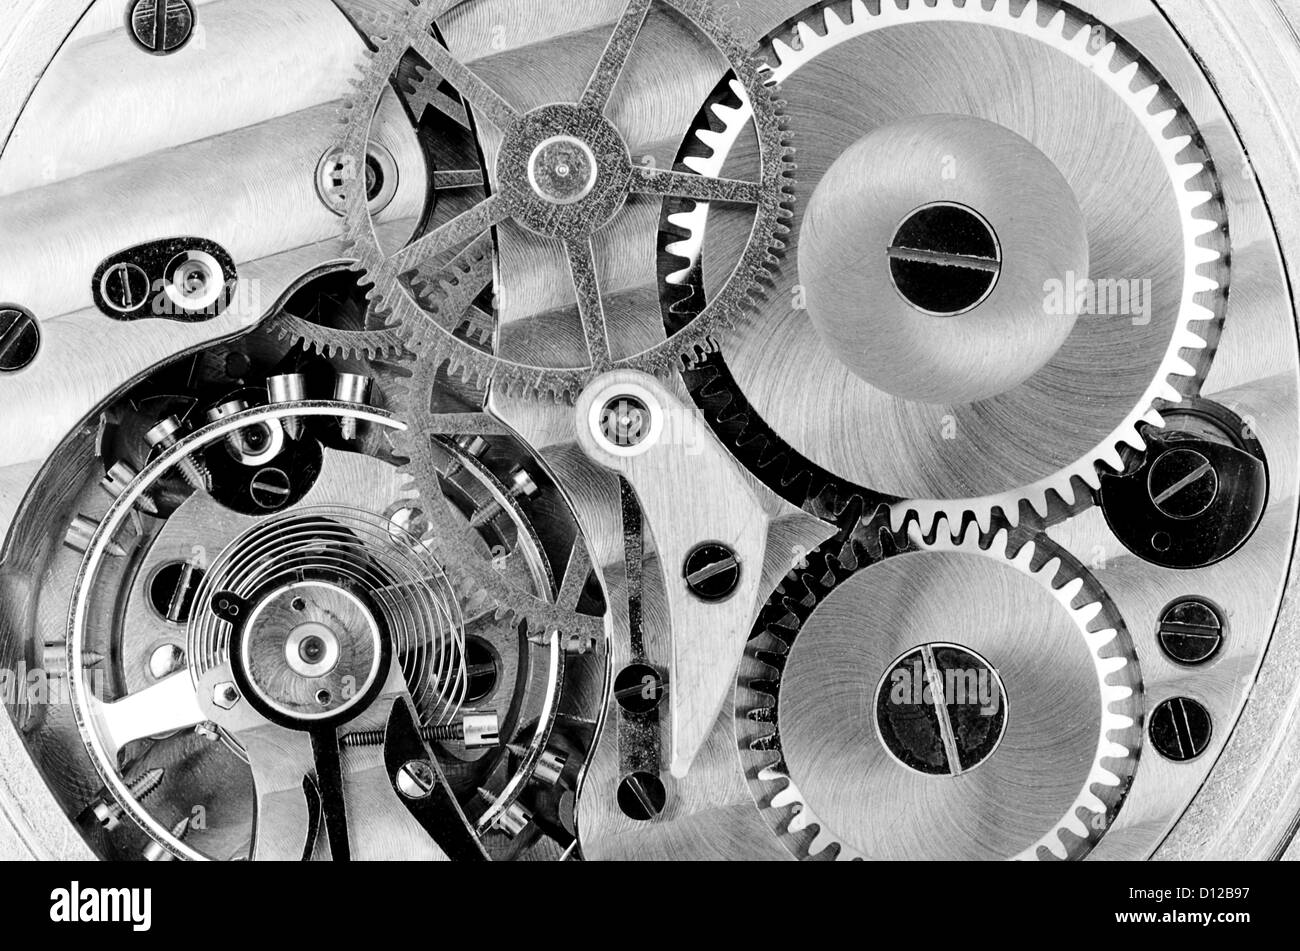 internal mechanism of a watch: gears, cogs, wheels, spring, screws - Stock Image